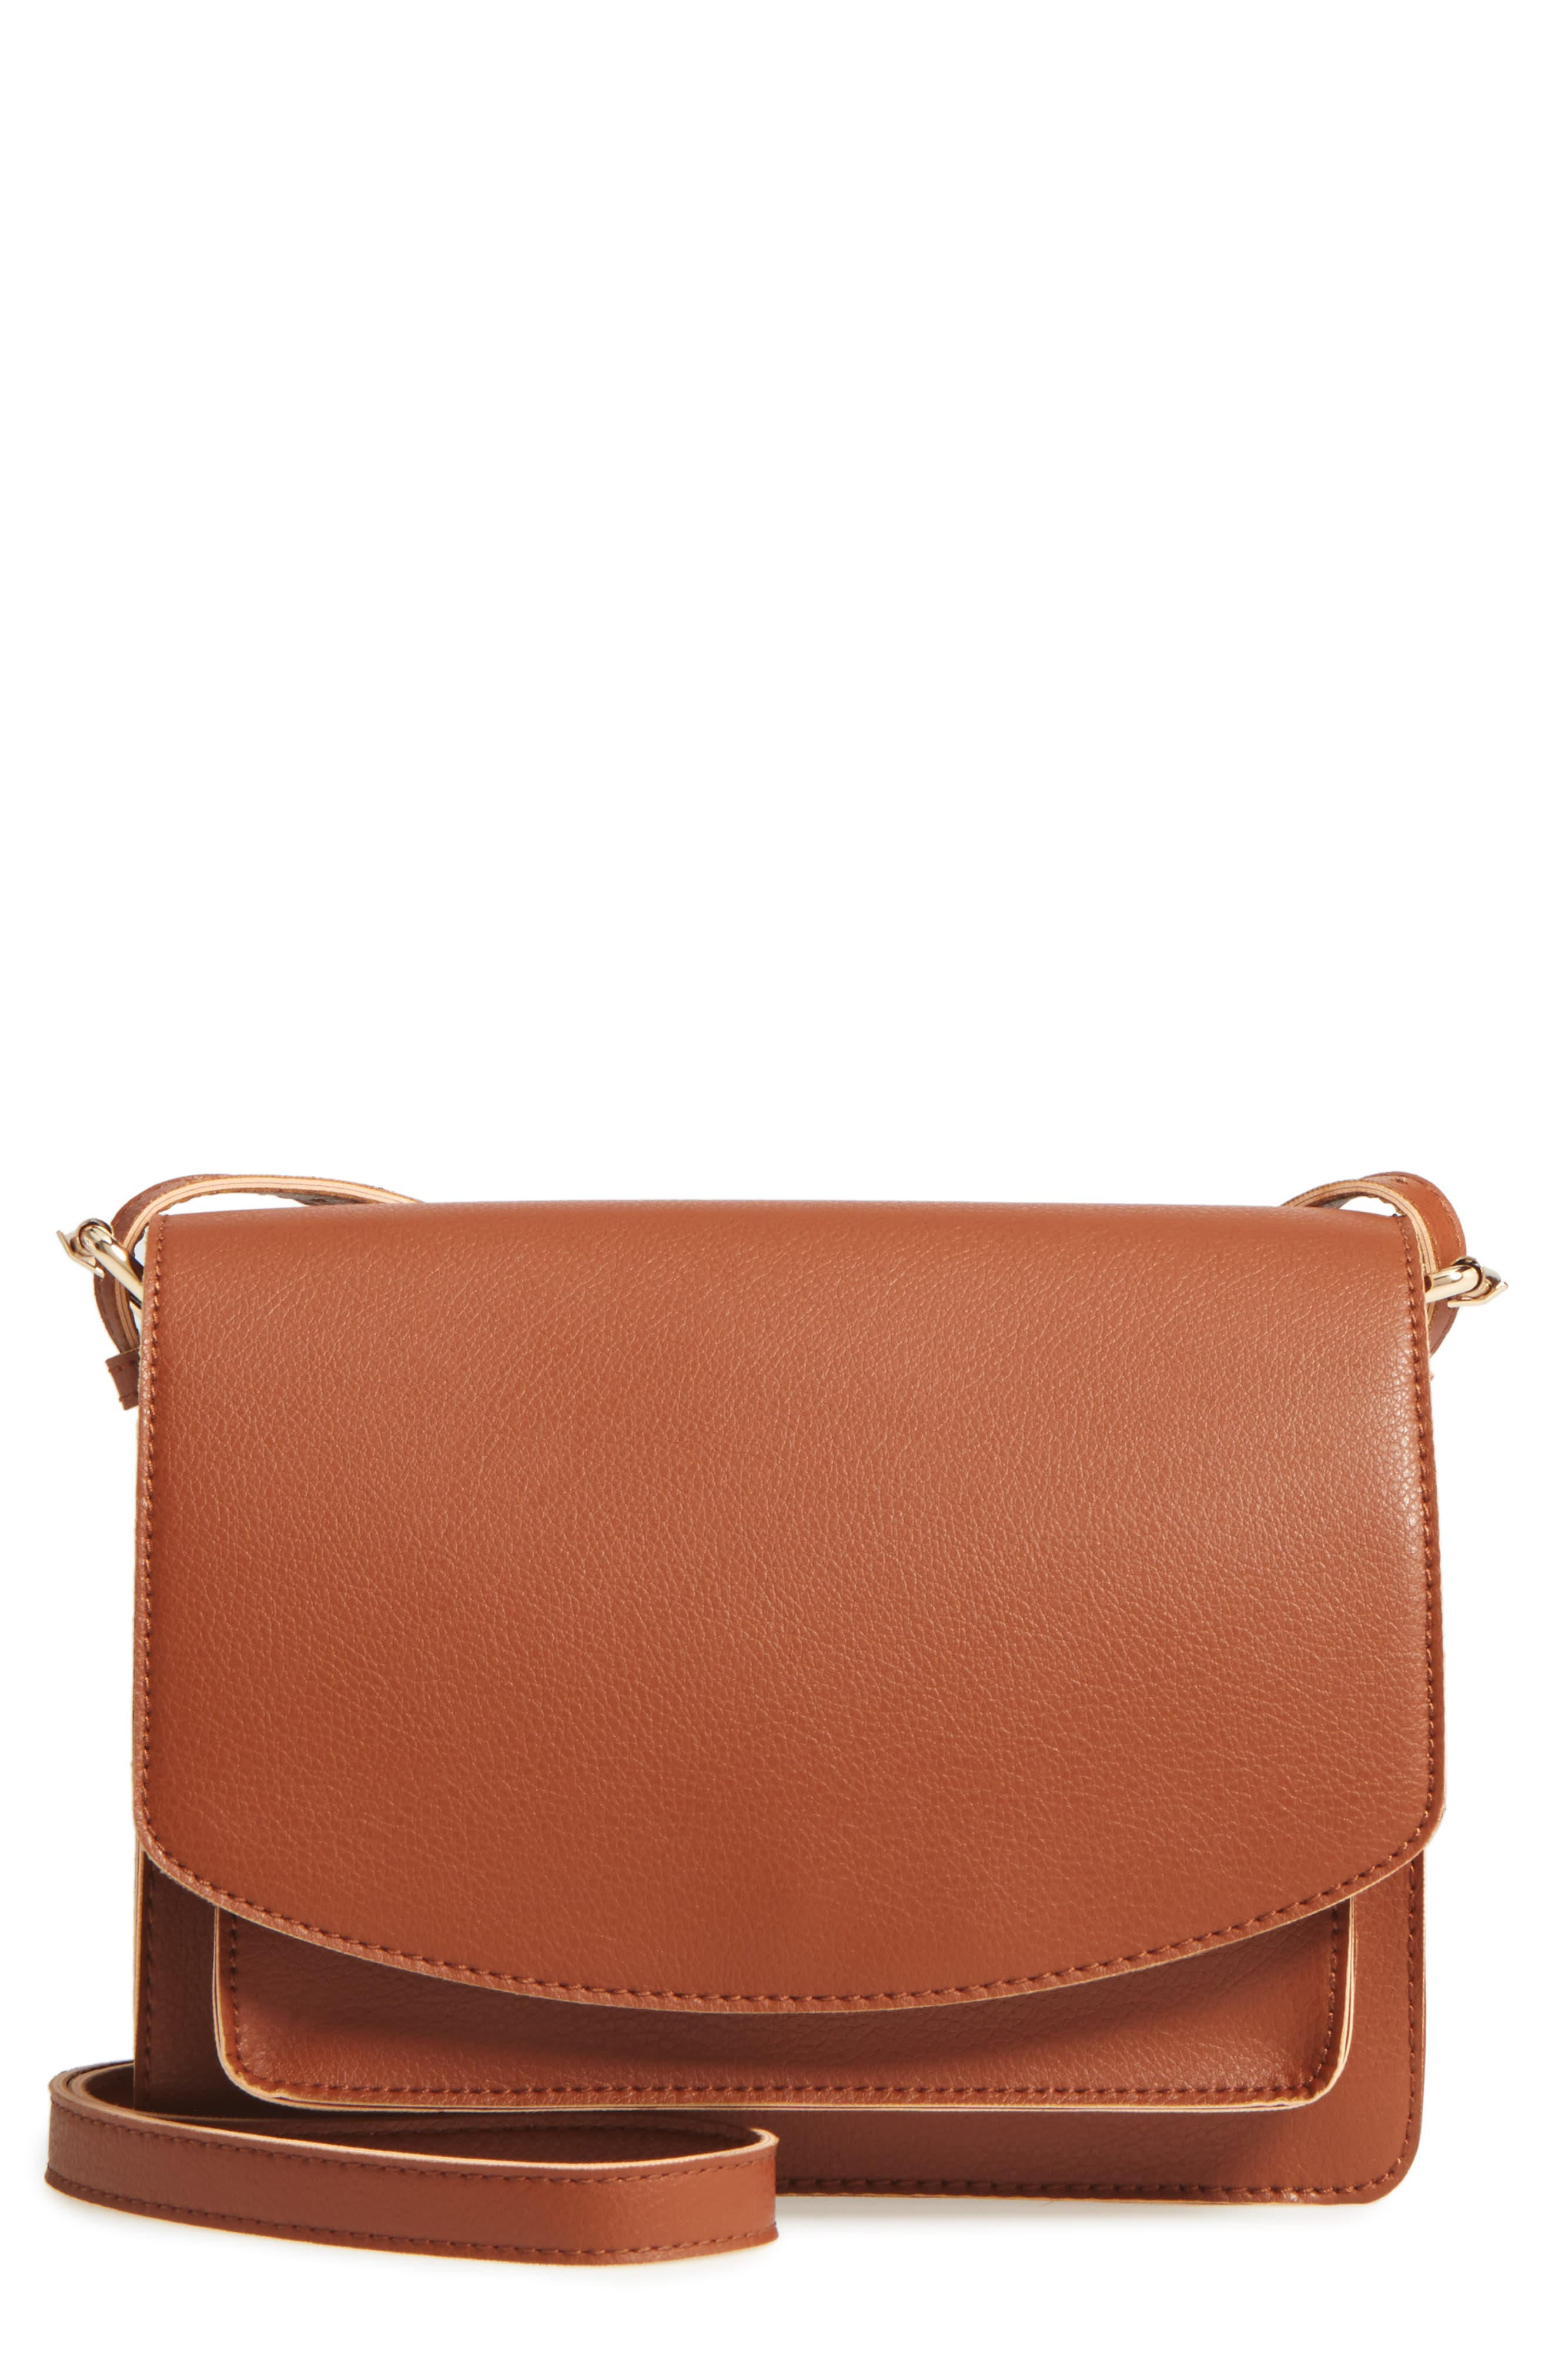 'Michelle' Faux Leather Crossbody Bag,                             Main thumbnail 1, color,                             New Cognac